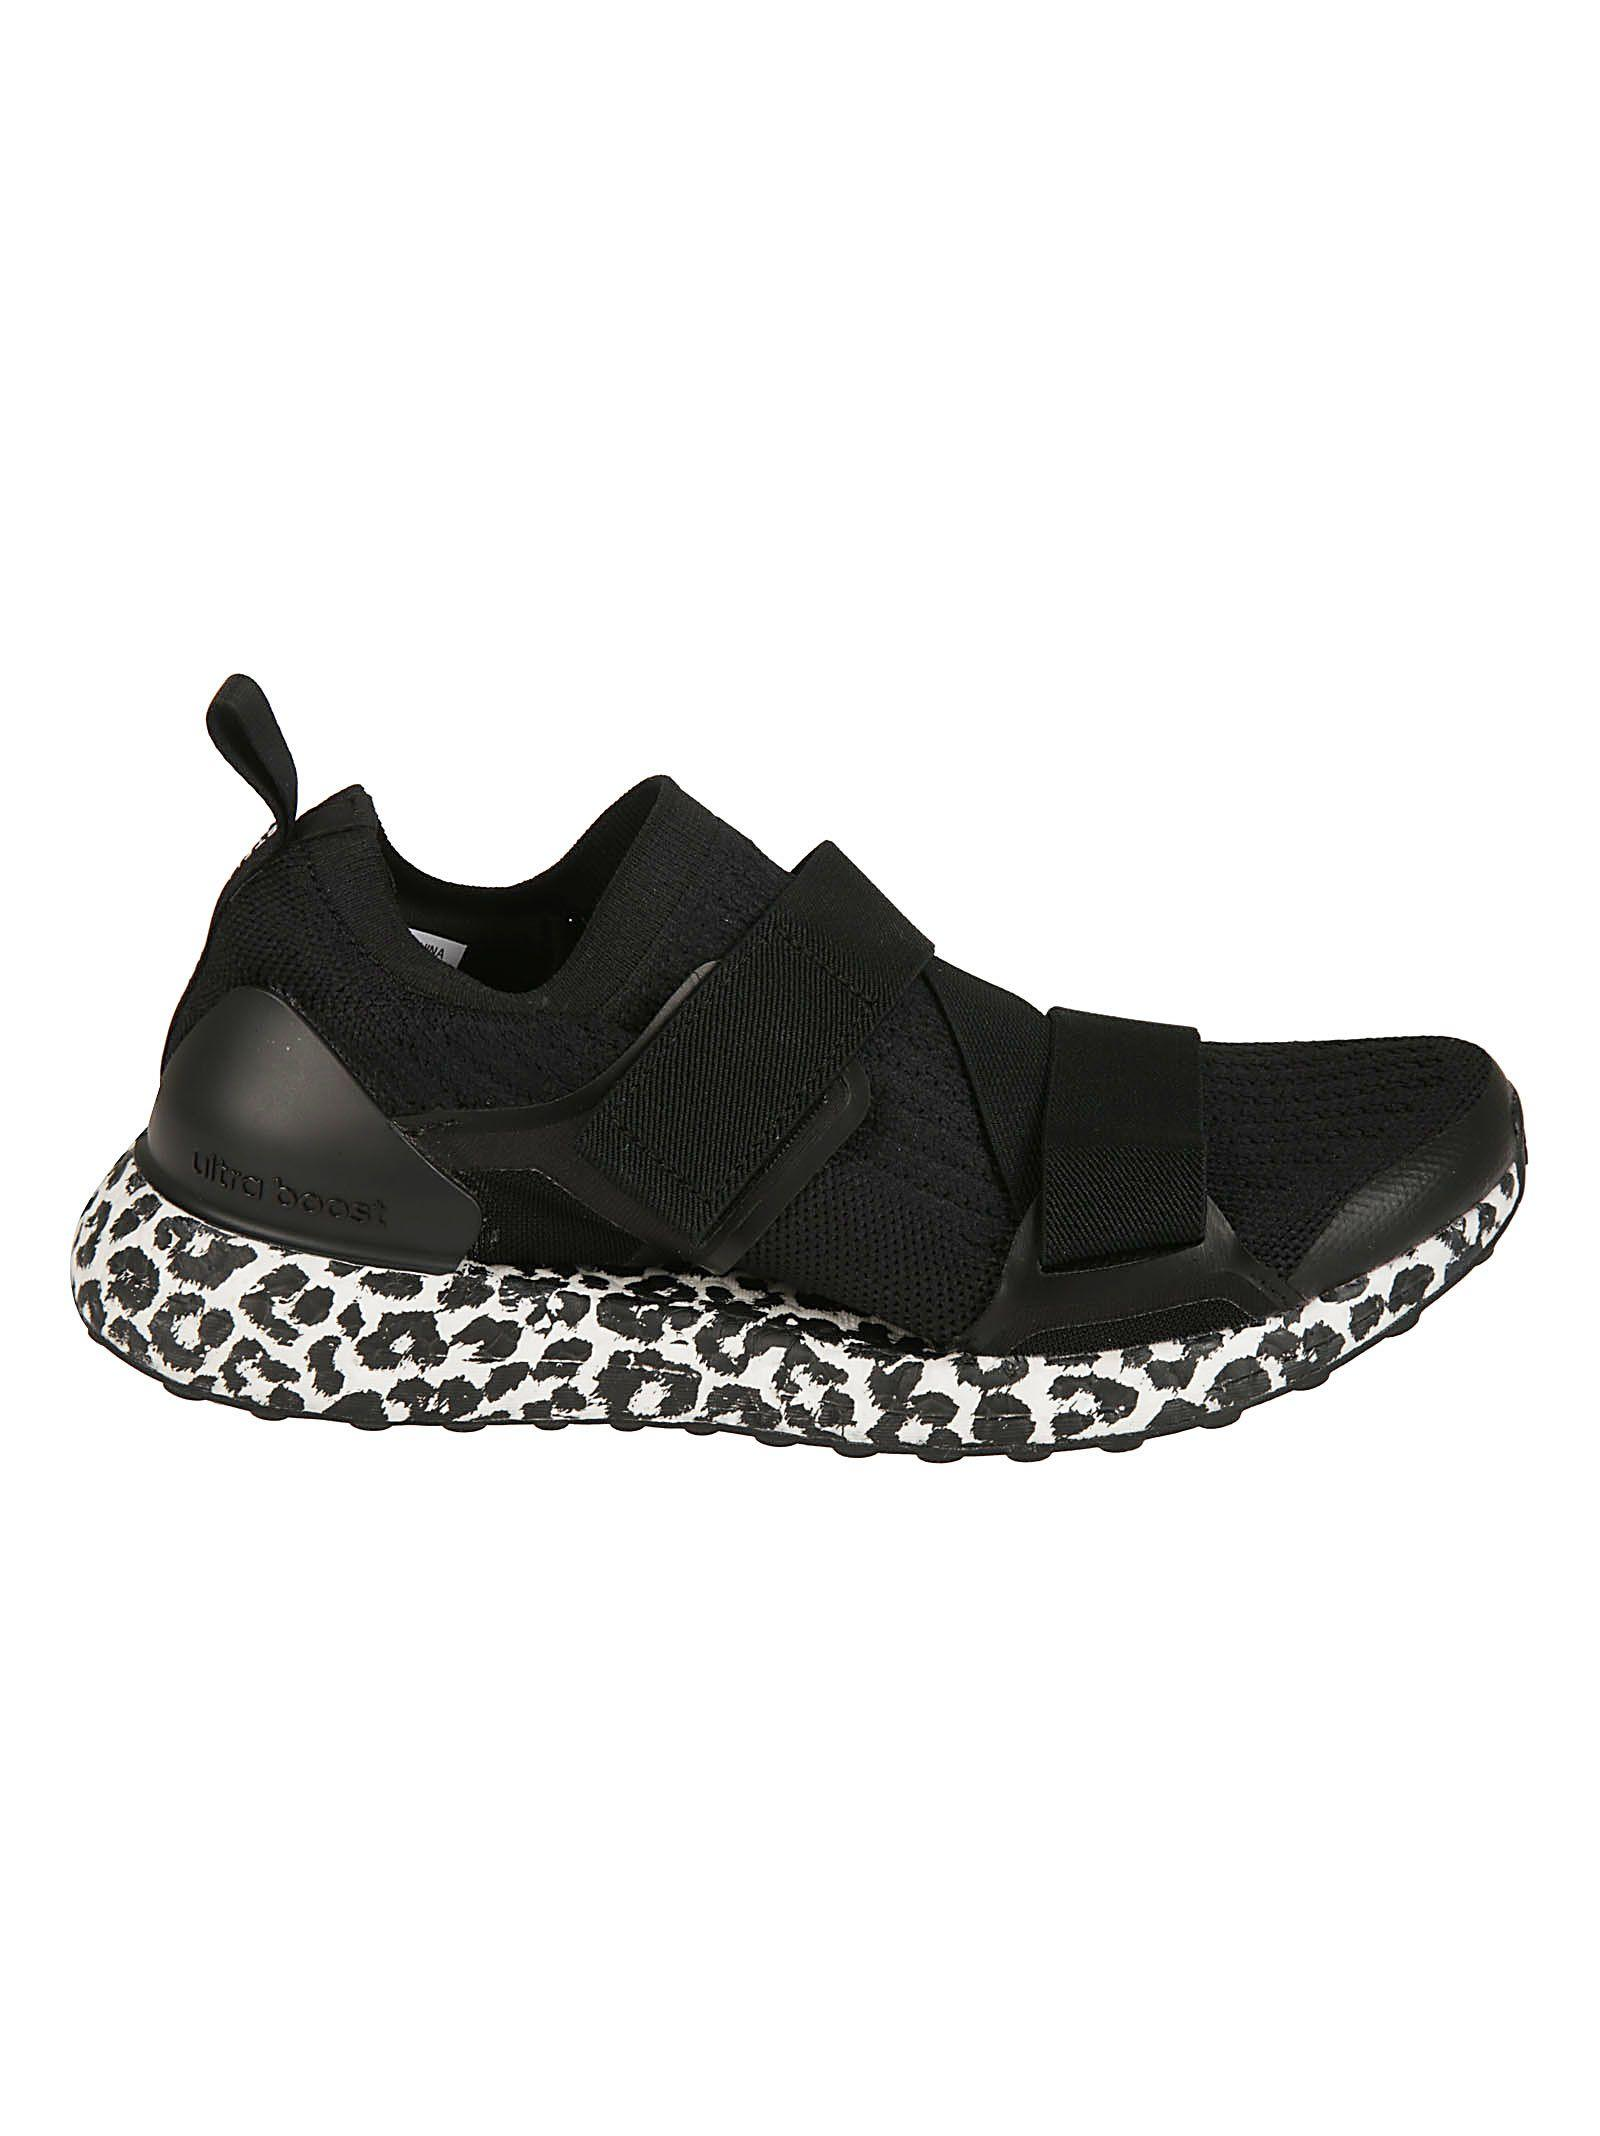 32a0312aae778 Adidas By Stella Mccartney Women s Shoes Trainers Sneakers Ultraboost X In  Black